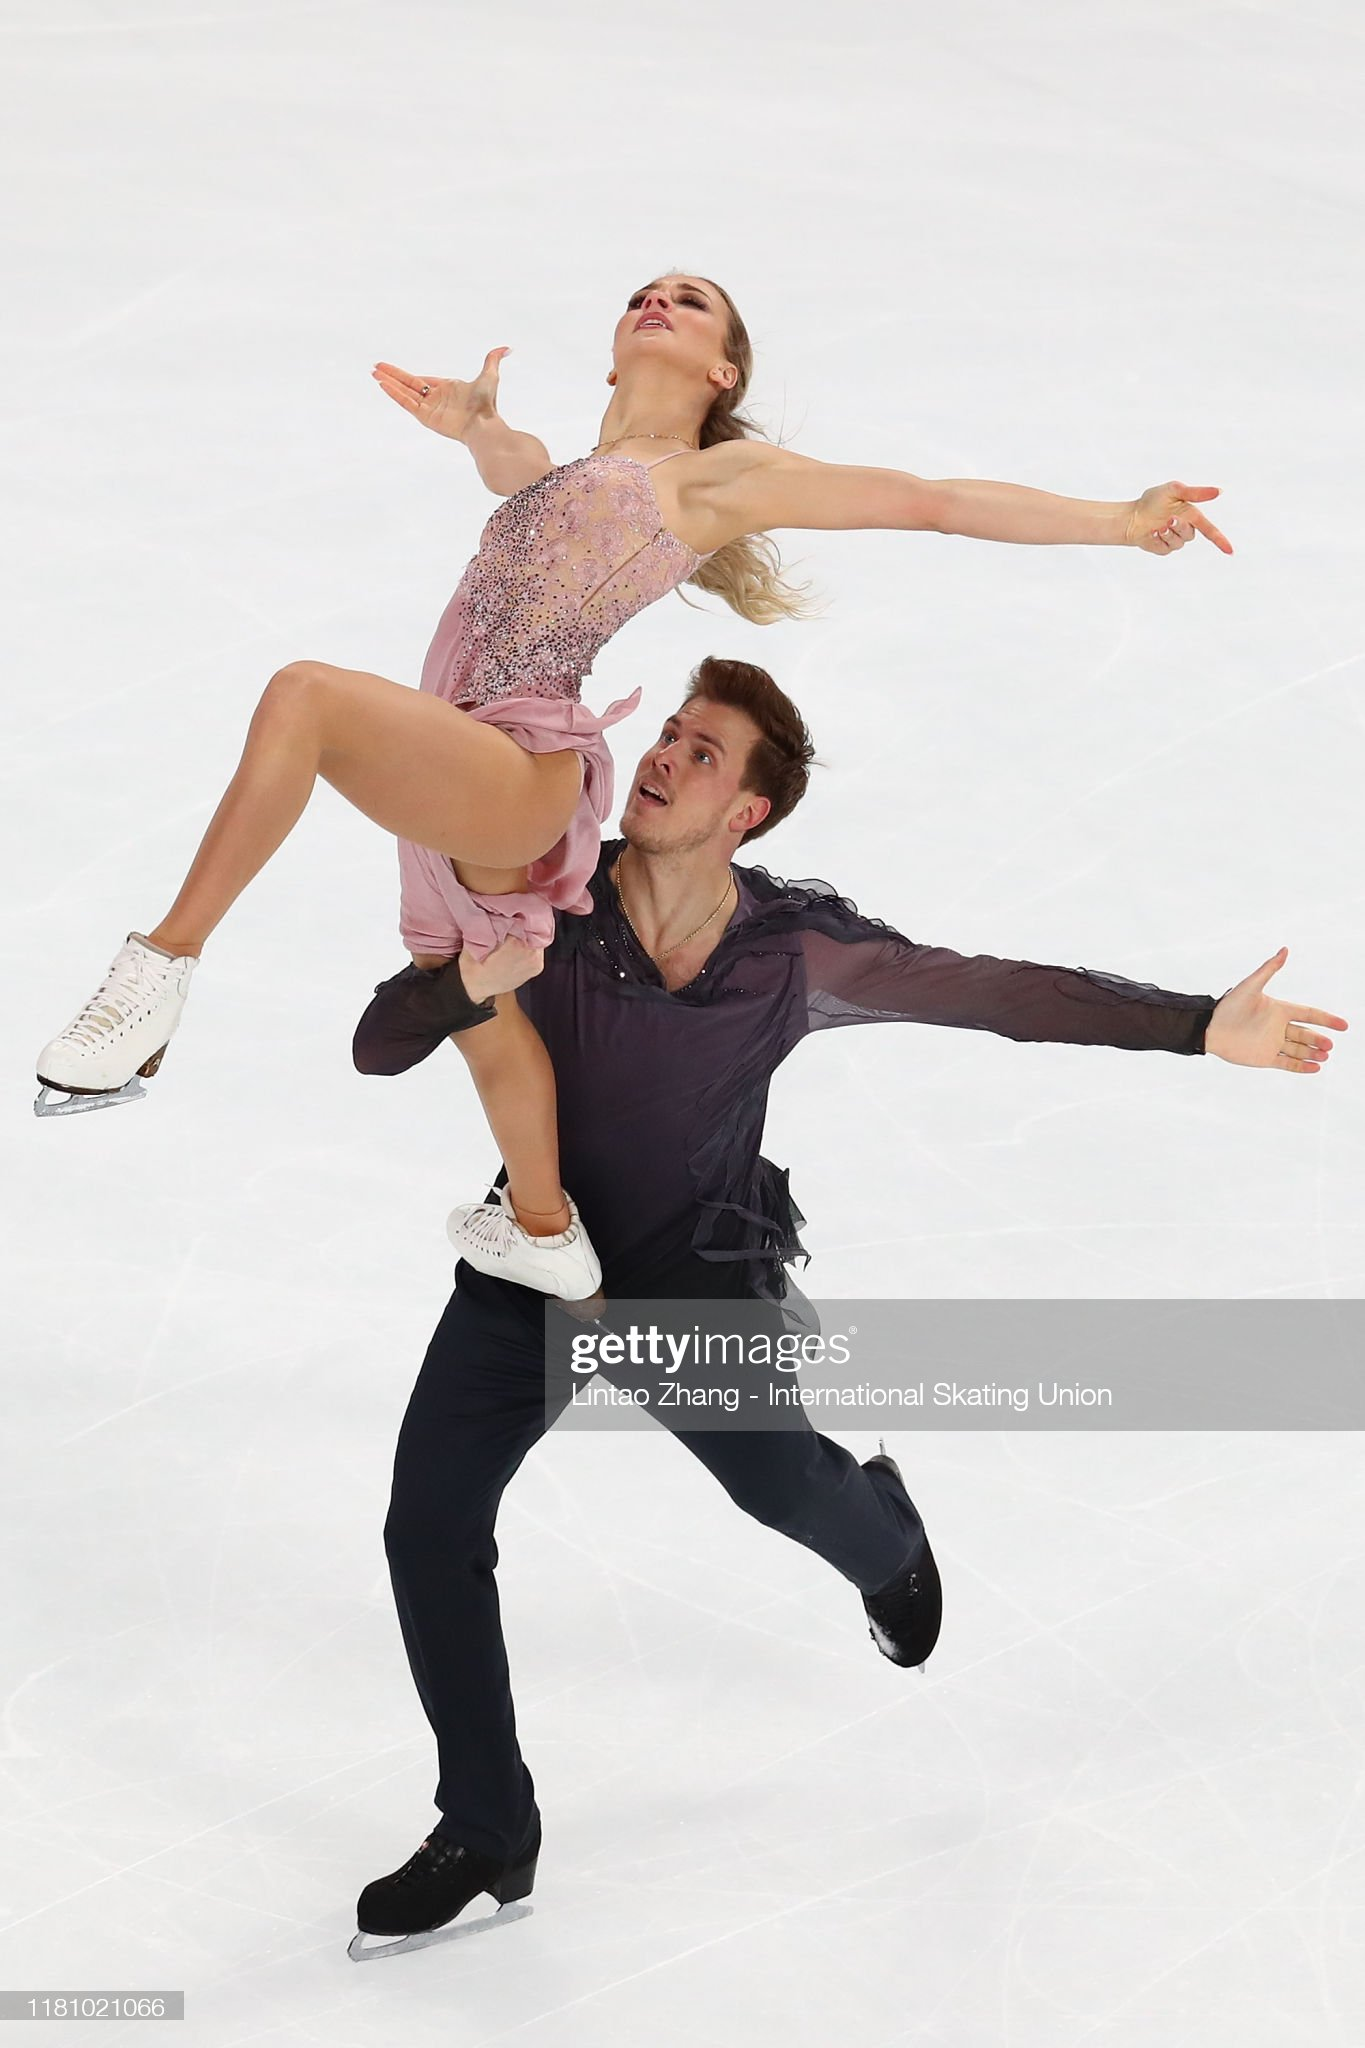 https://media.gettyimages.com/photos/victoria-sinitsina-and-nikita-katsalapov-of-russia-performs-in-the-picture-id1181021066?s=2048x2048